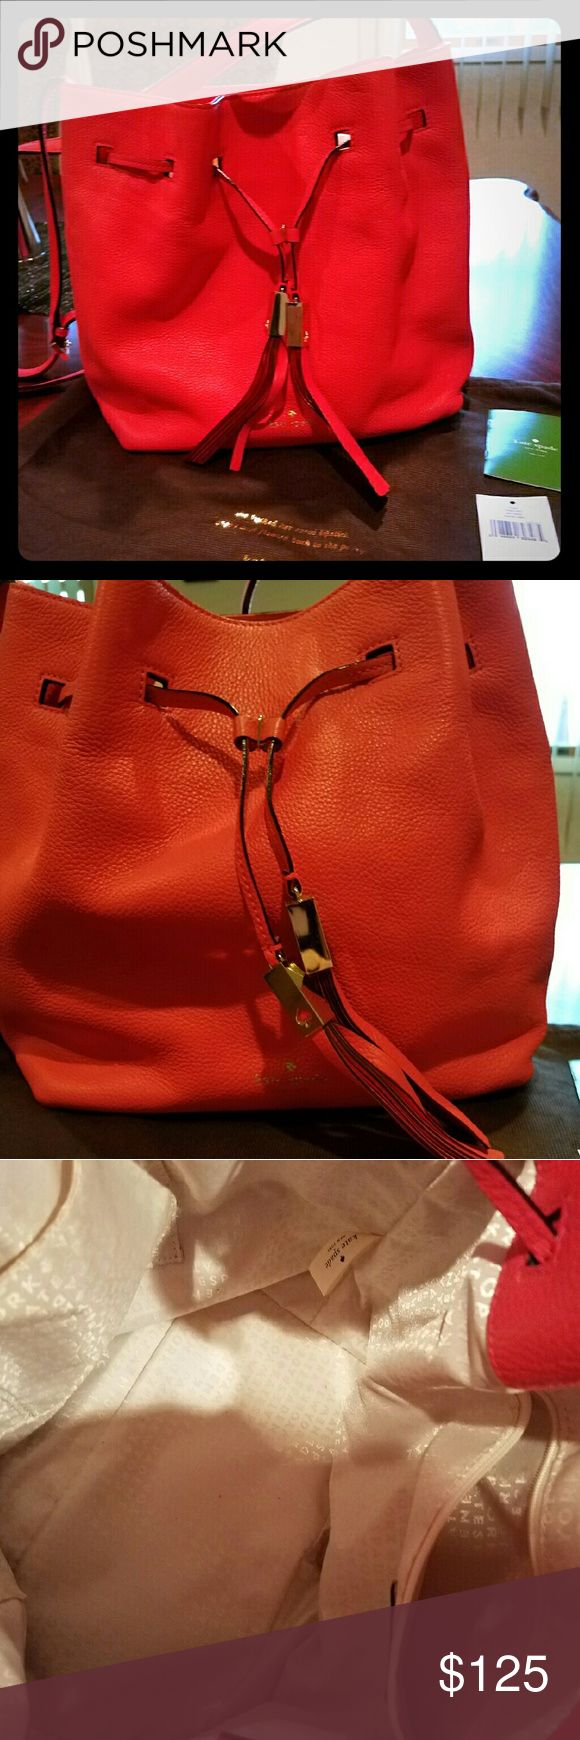 "Kate Spade Coral leather crossbody ""Hotrose"" leather medium to large crossbody bag with drawstring kate spade Bags Crossbody Bags"